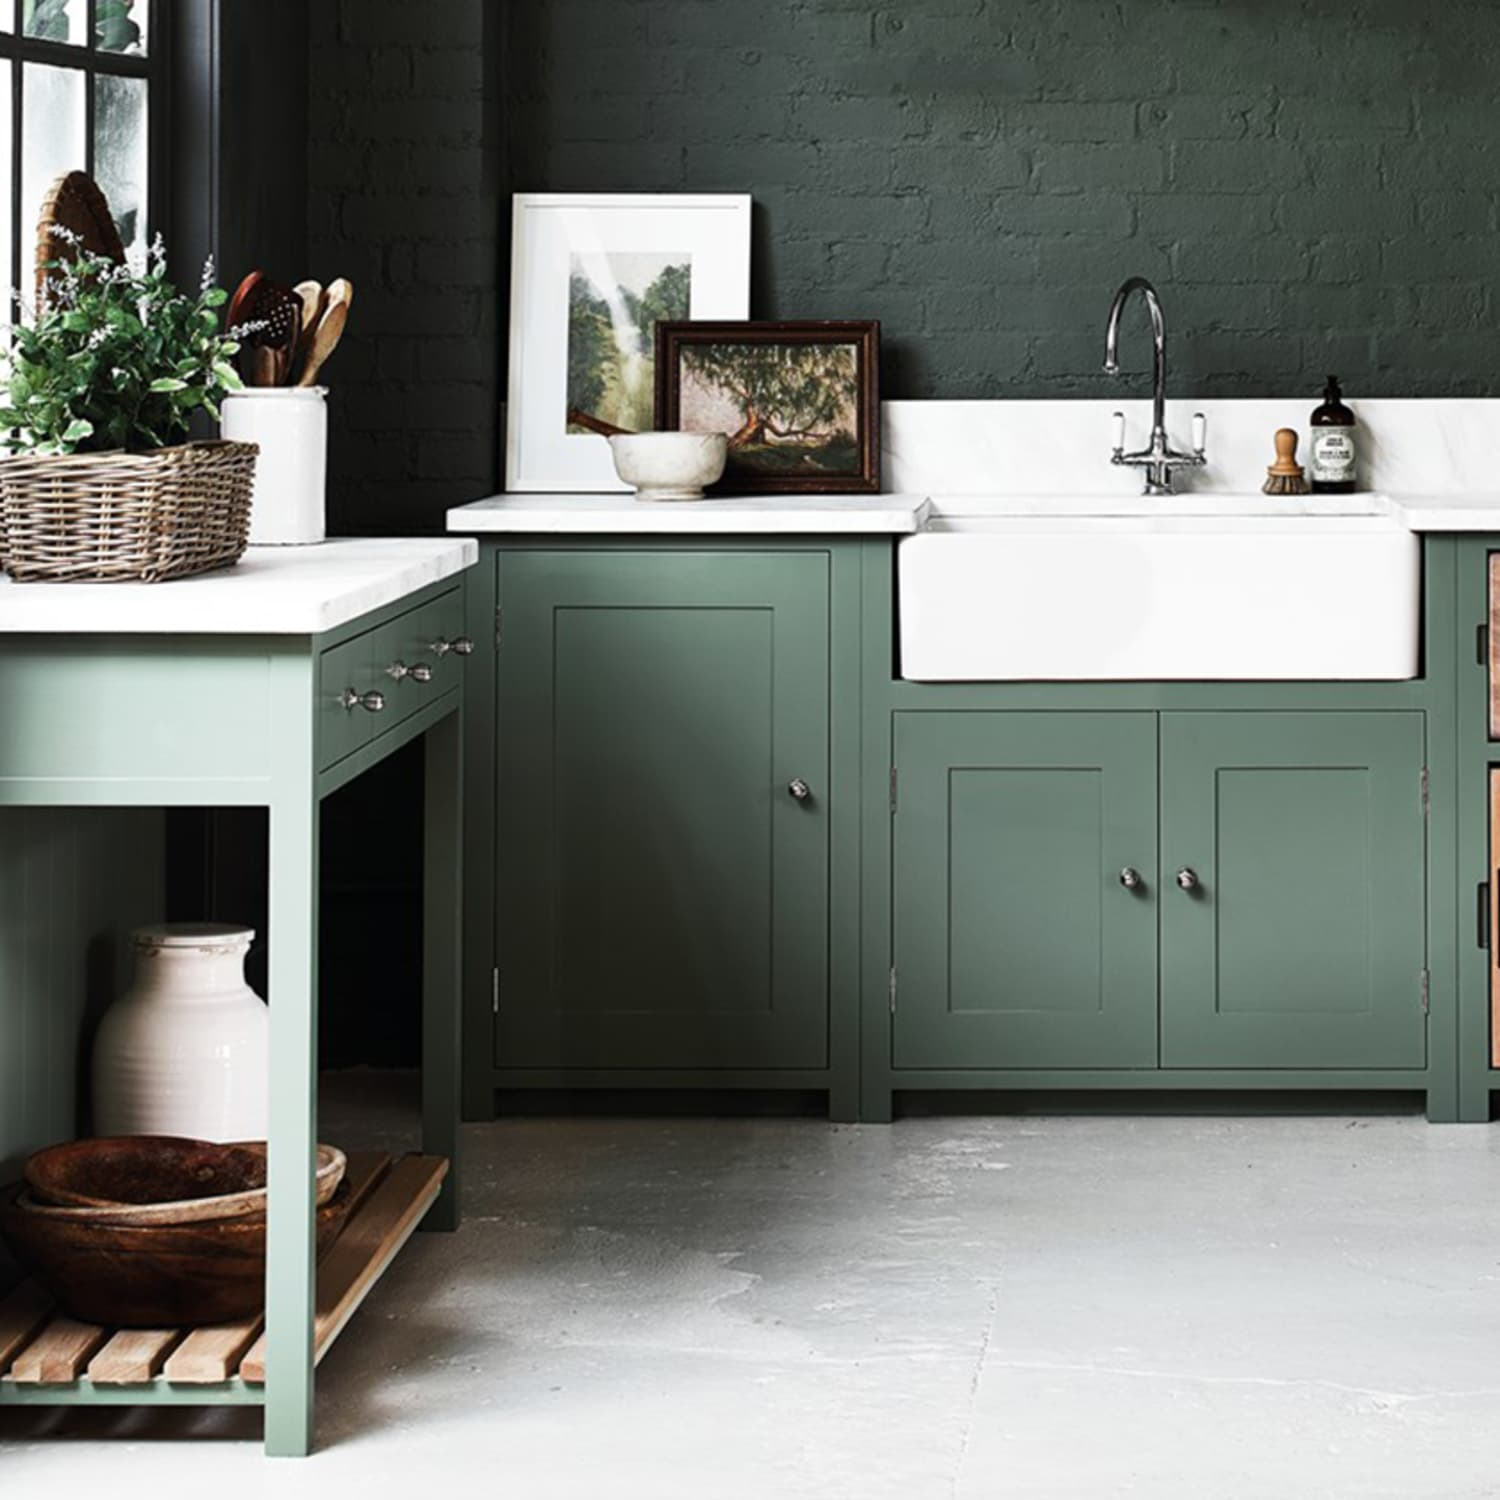 2018 Paint Trends Kitchen Cabinet Color Predictions